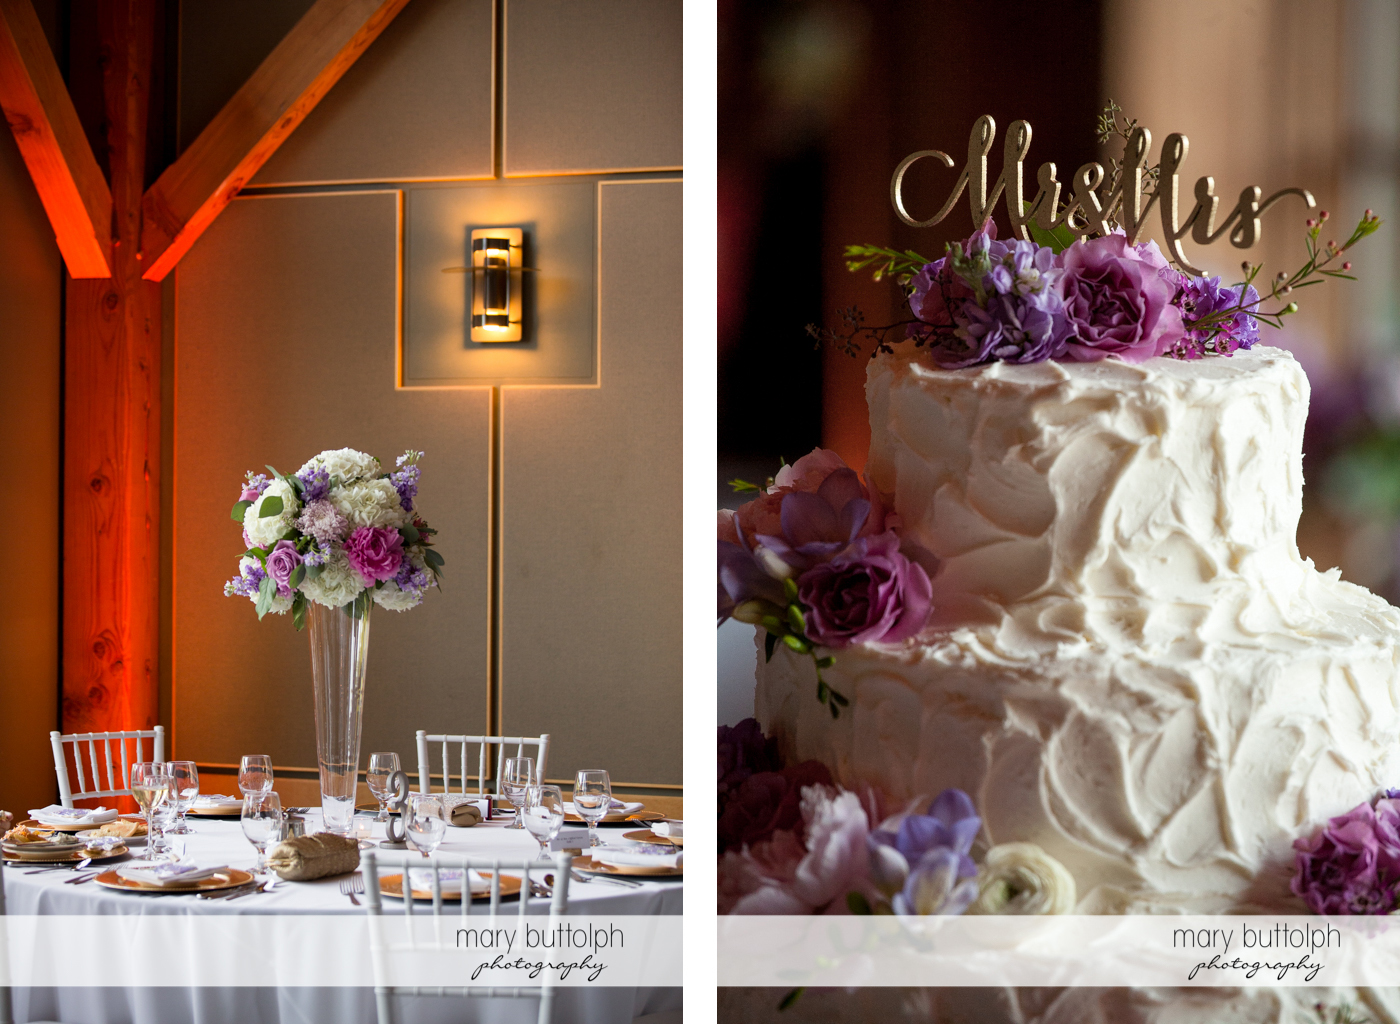 Flowers decorate the table and the couple's wedding cake at the Lodge at Welch Allyn Wedding